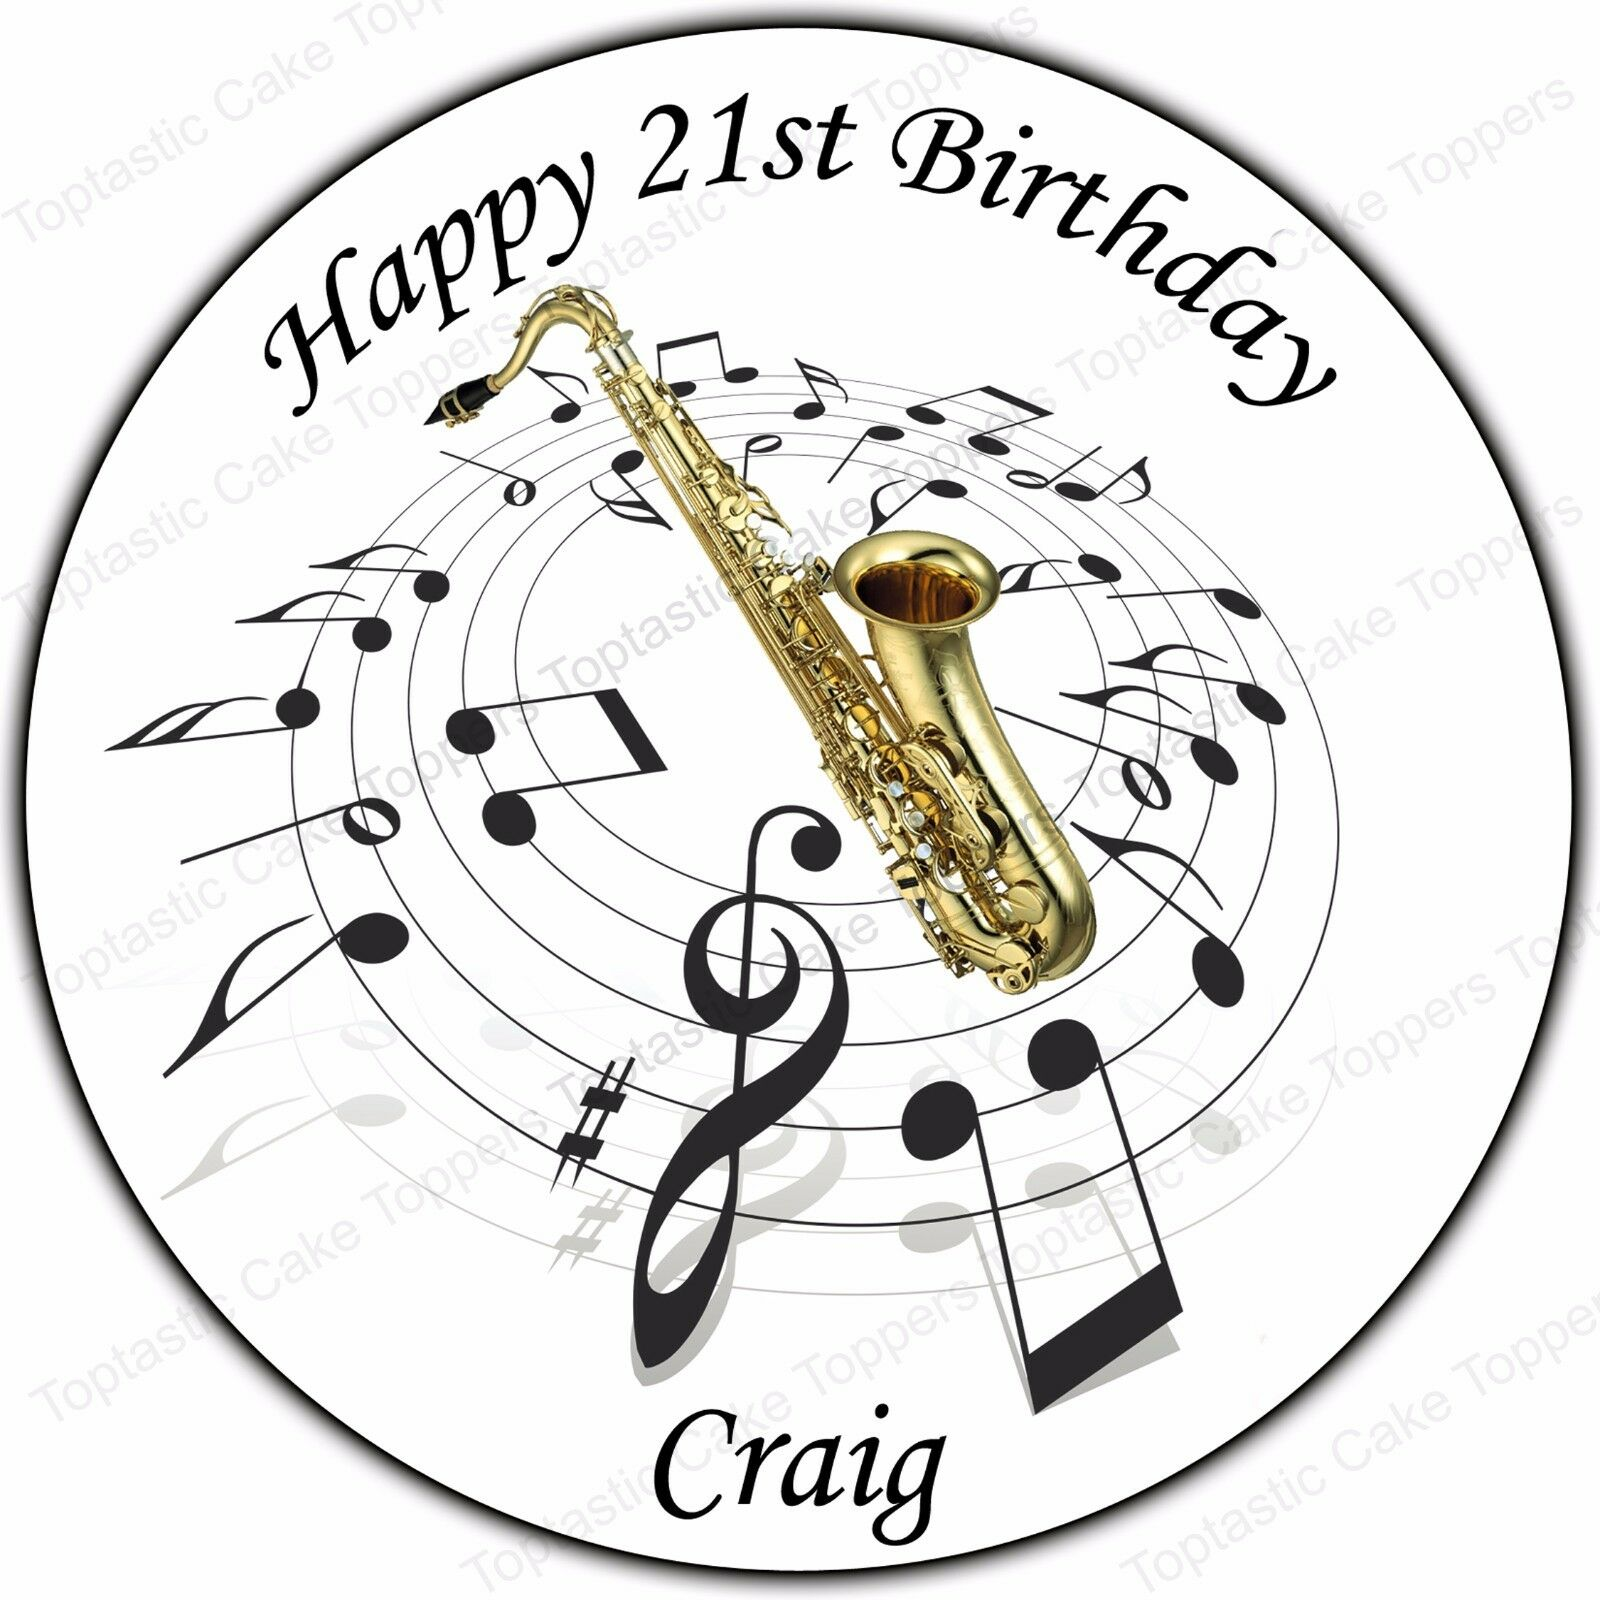 Woodwind Instruments Music Notes Precut Wafer Paper Party Cupcake Toppers Sax Decorations & Cake Toppers